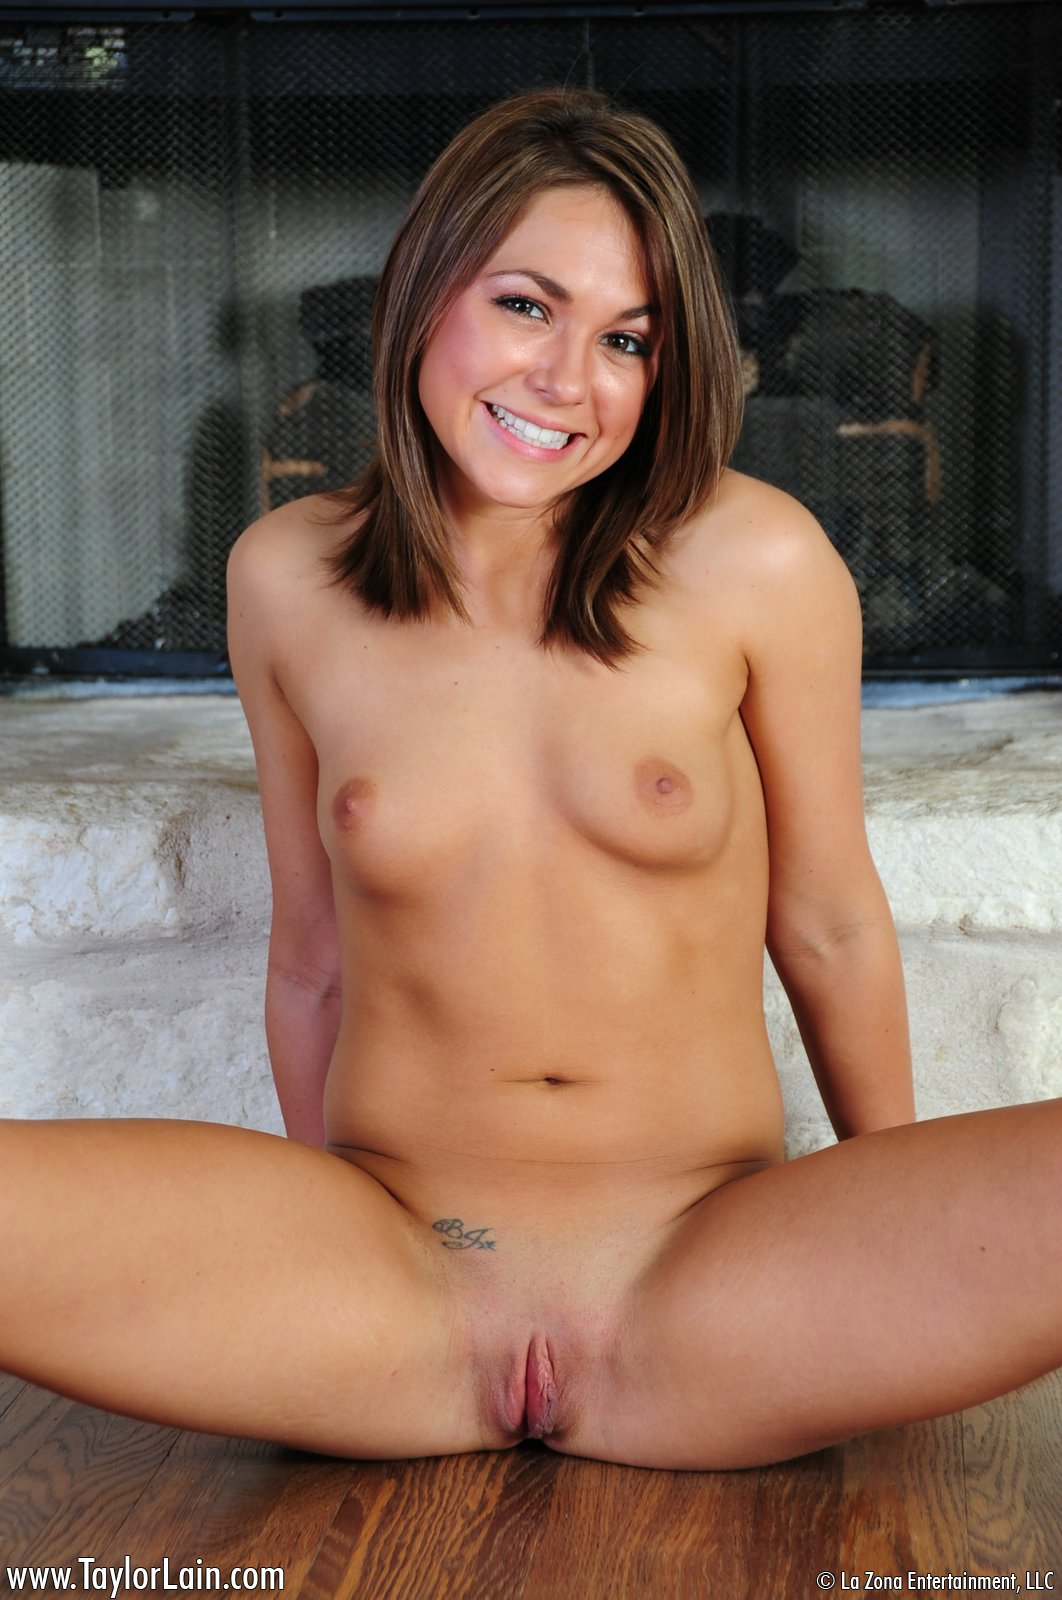 Taylor Lain Stripping Naked